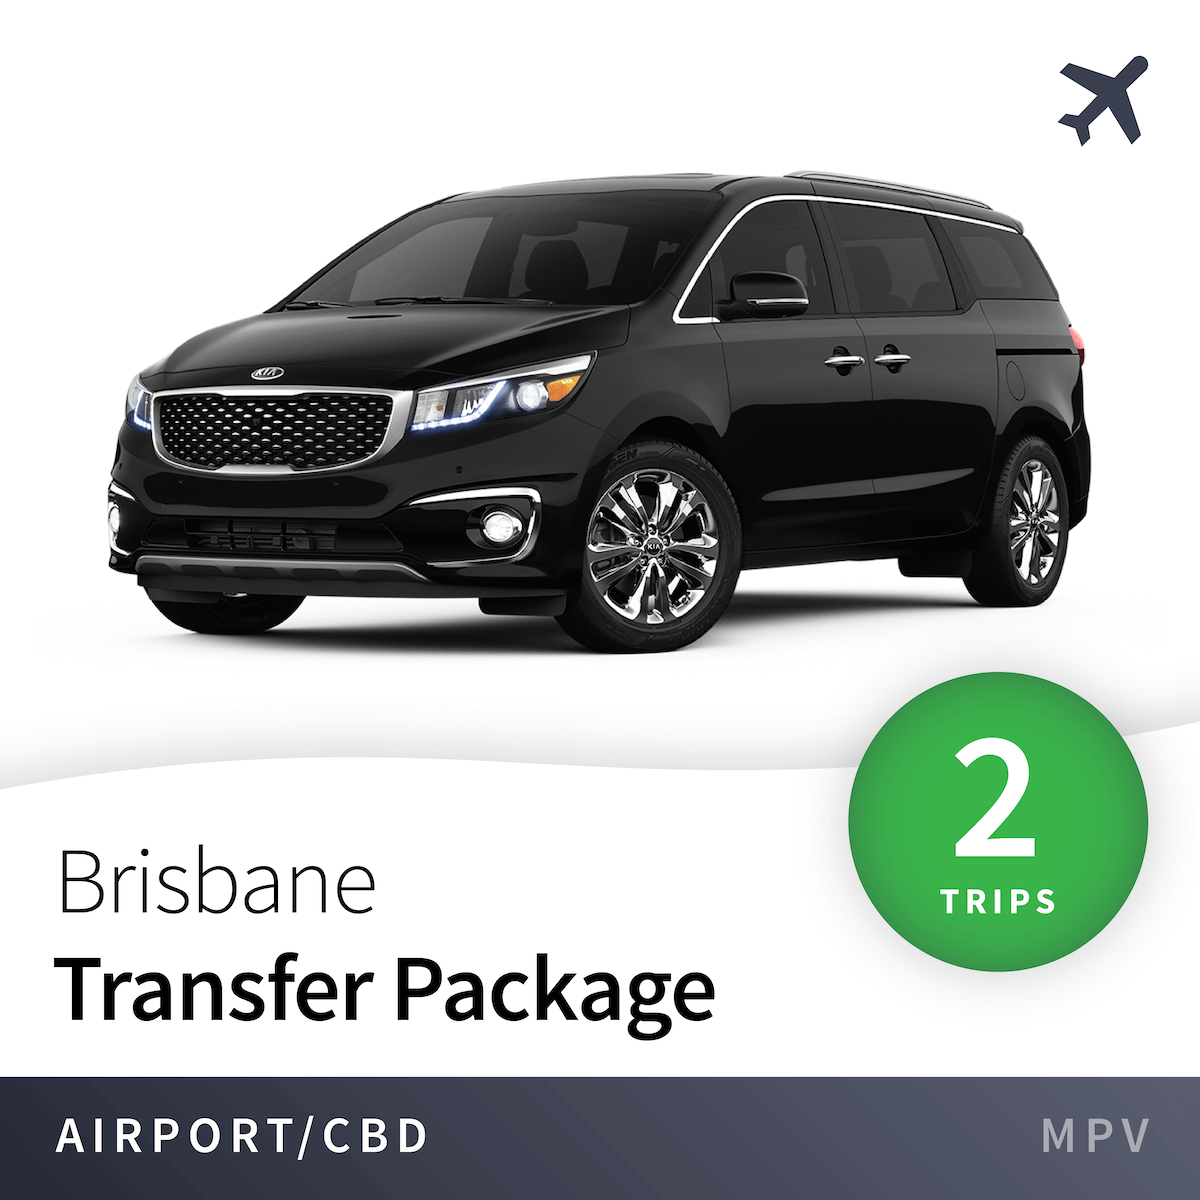 Brisbane Airport Transfer Package - MPV (2 Trips) 7